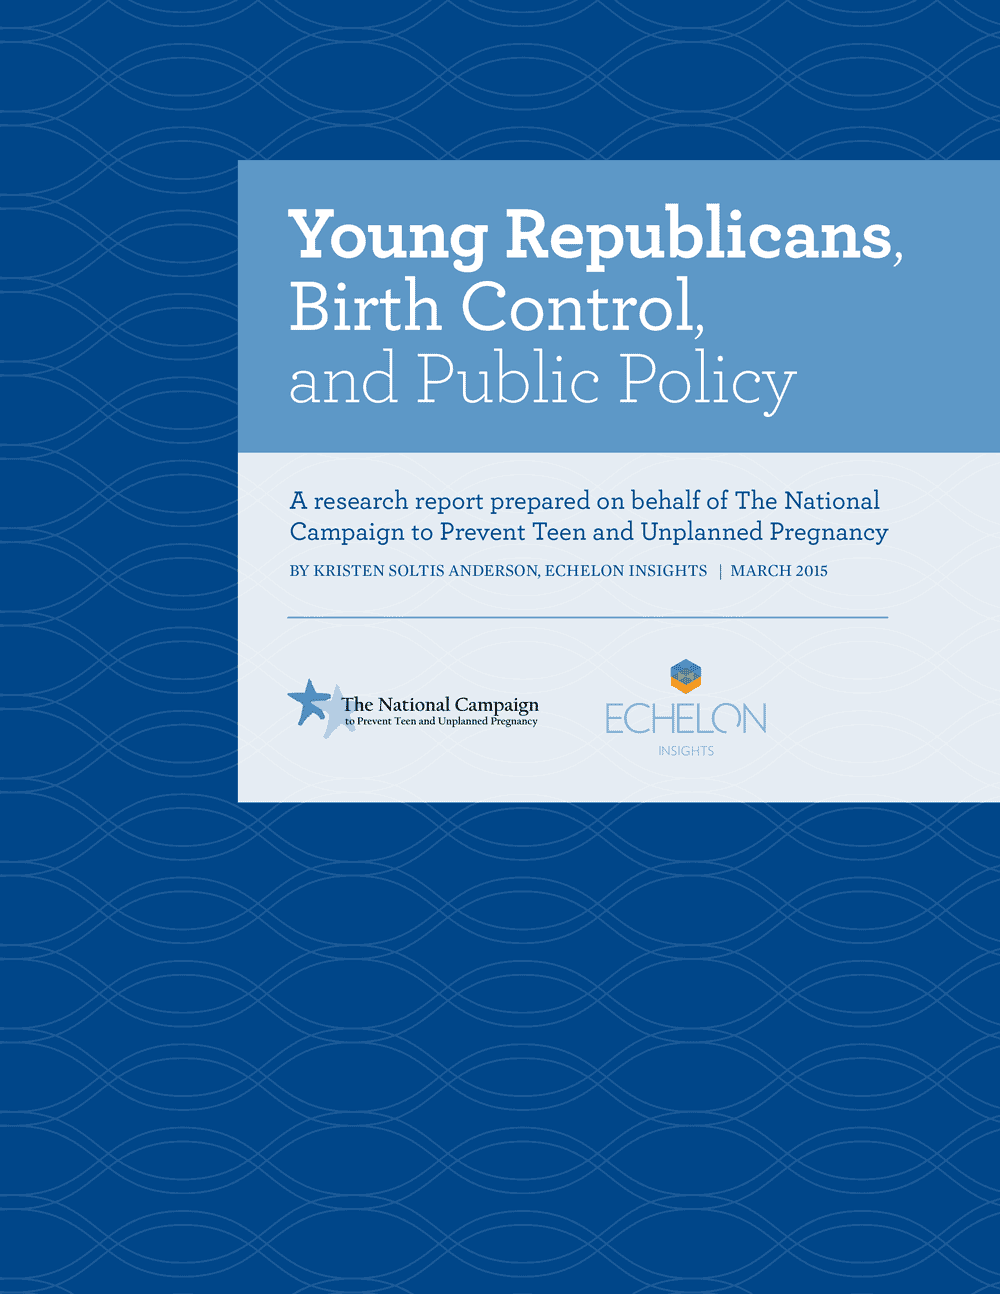 Young Republicans, Birth Control, and Public Policy